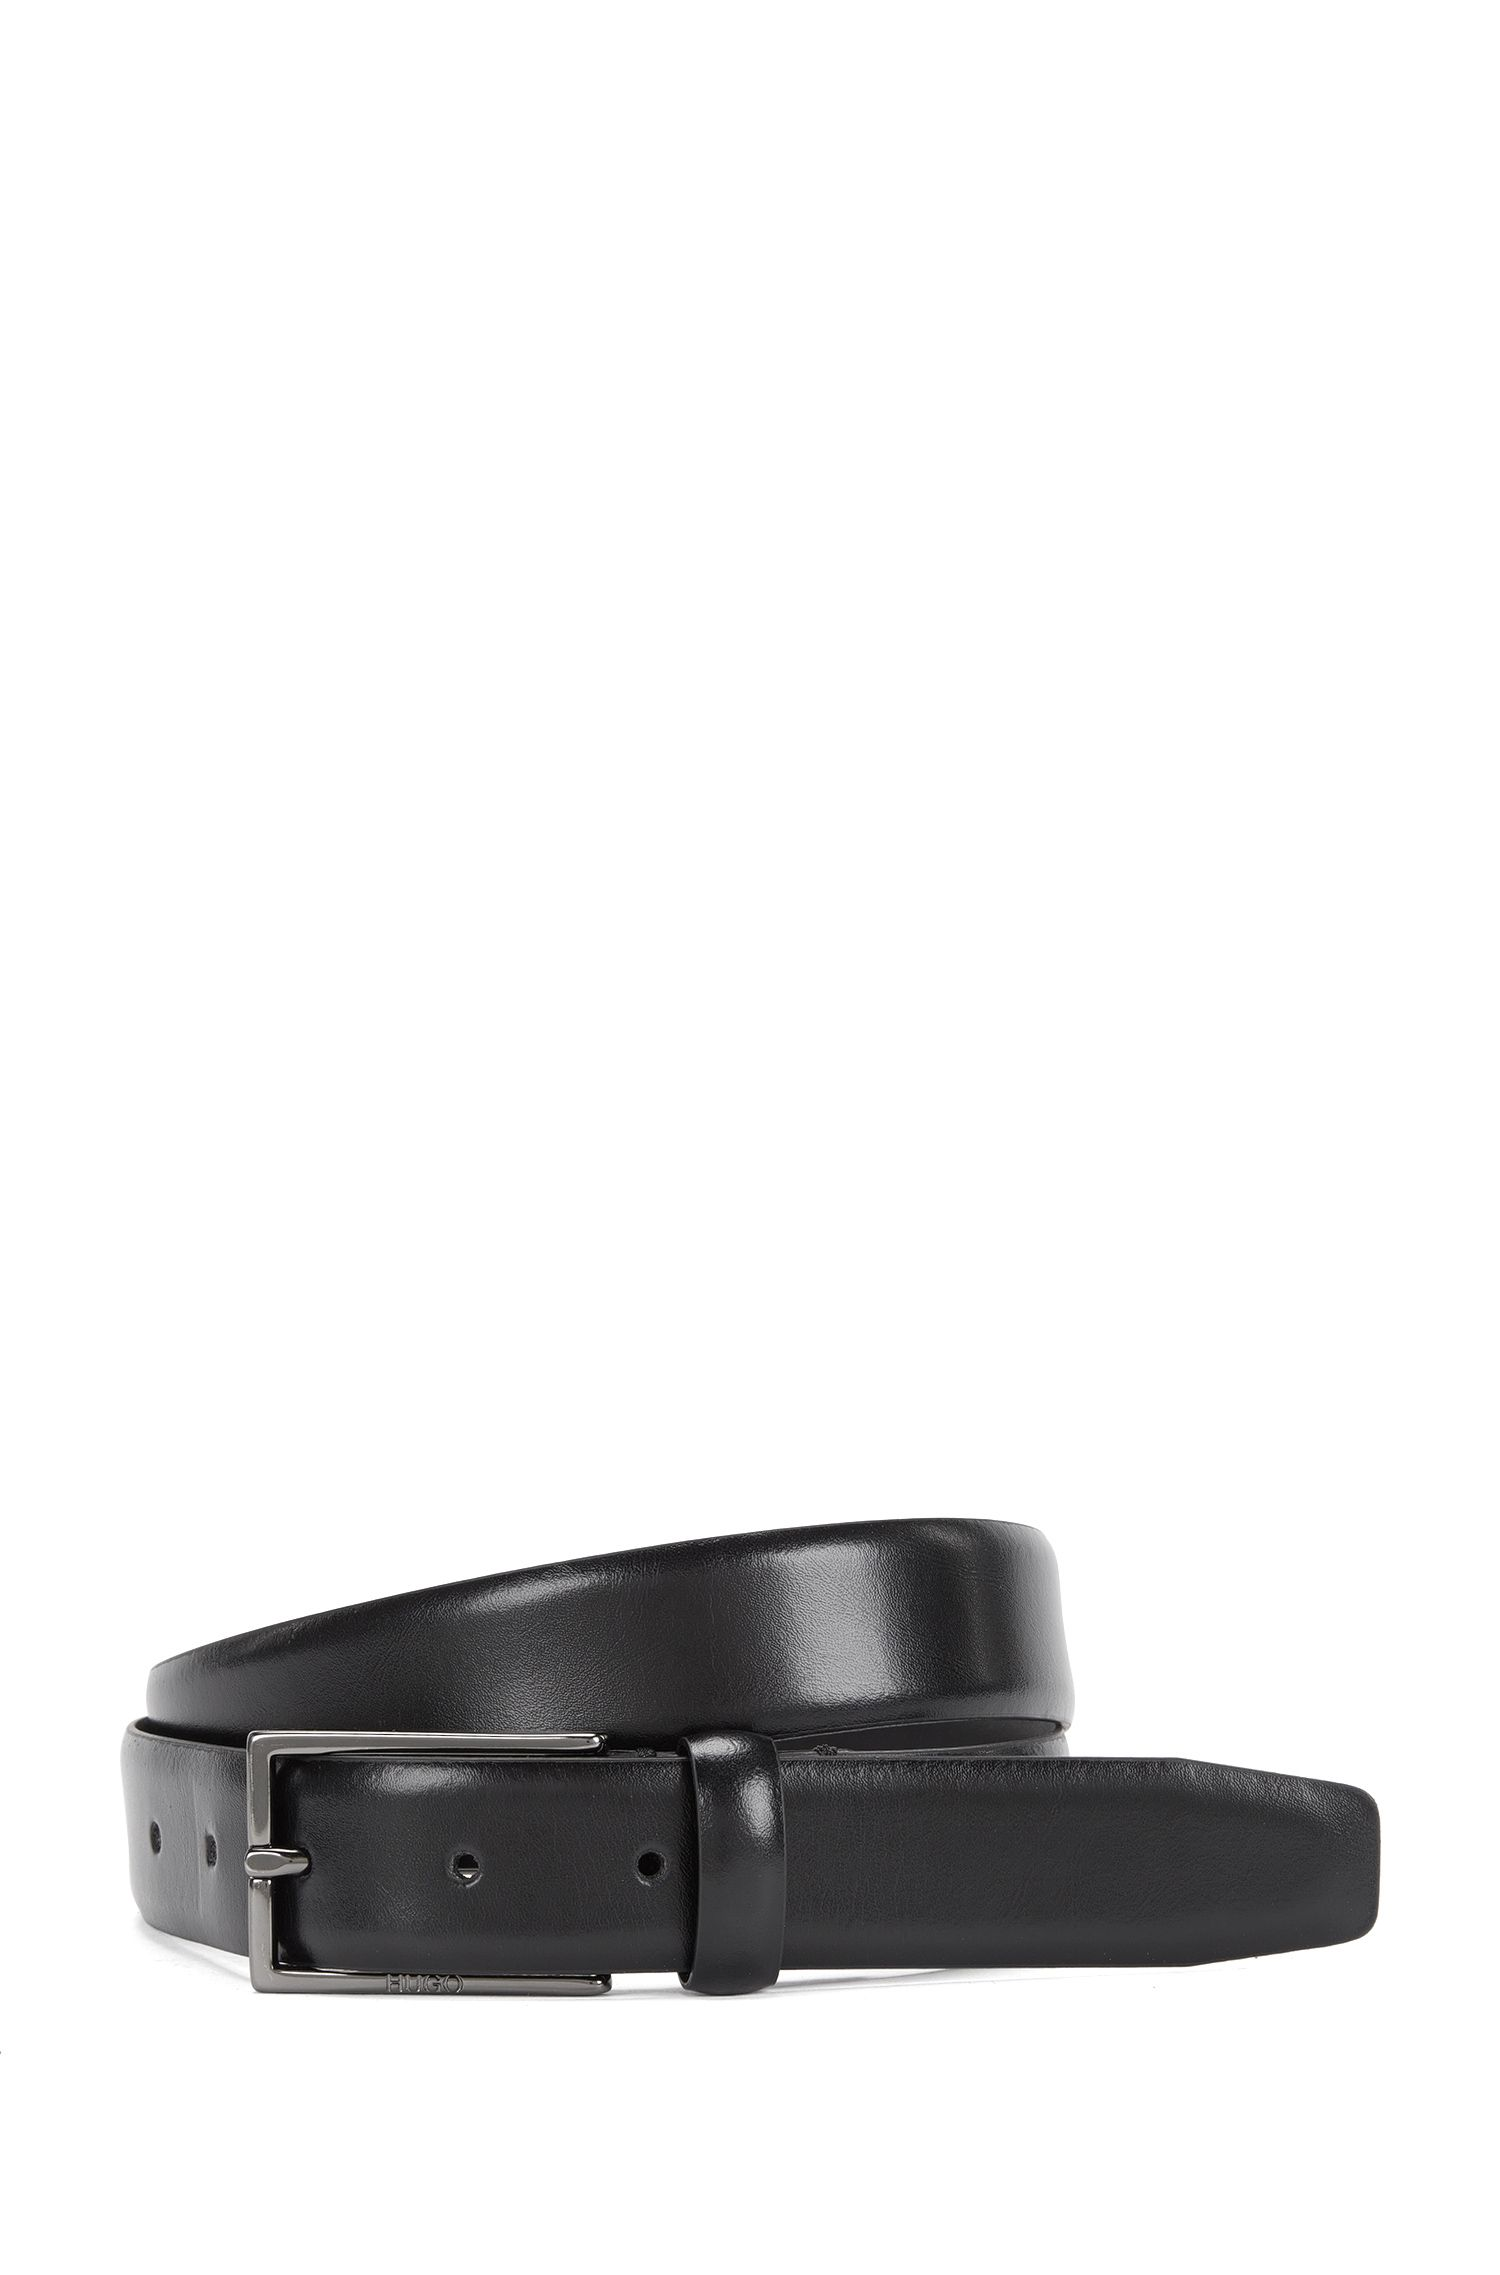 Italian Leather Belt | Ganticus Sz Itpl